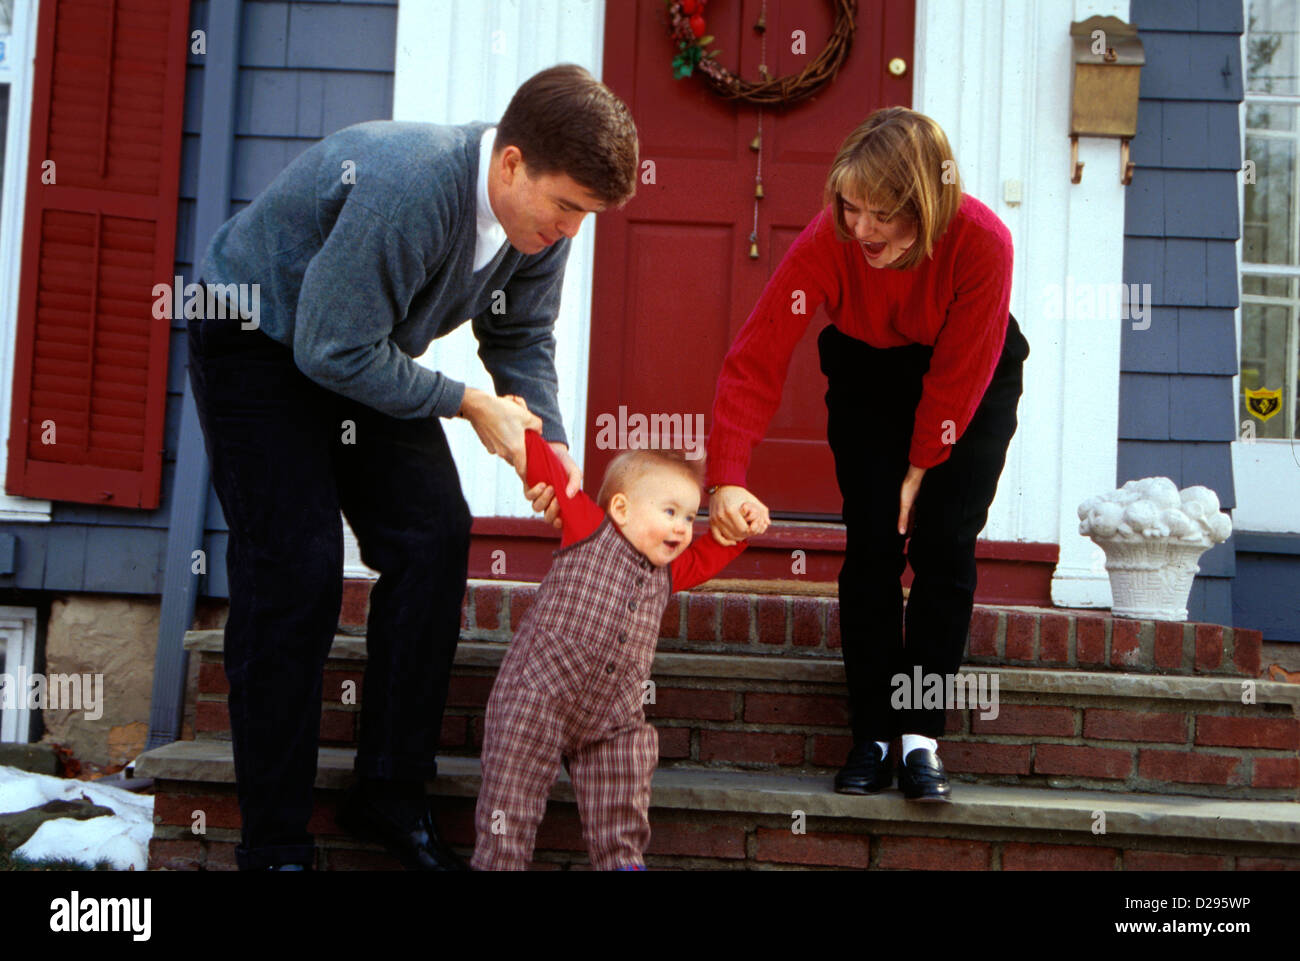 Parents In Their 30'S Walking Down Steps With One Year Old Baby - Stock Image